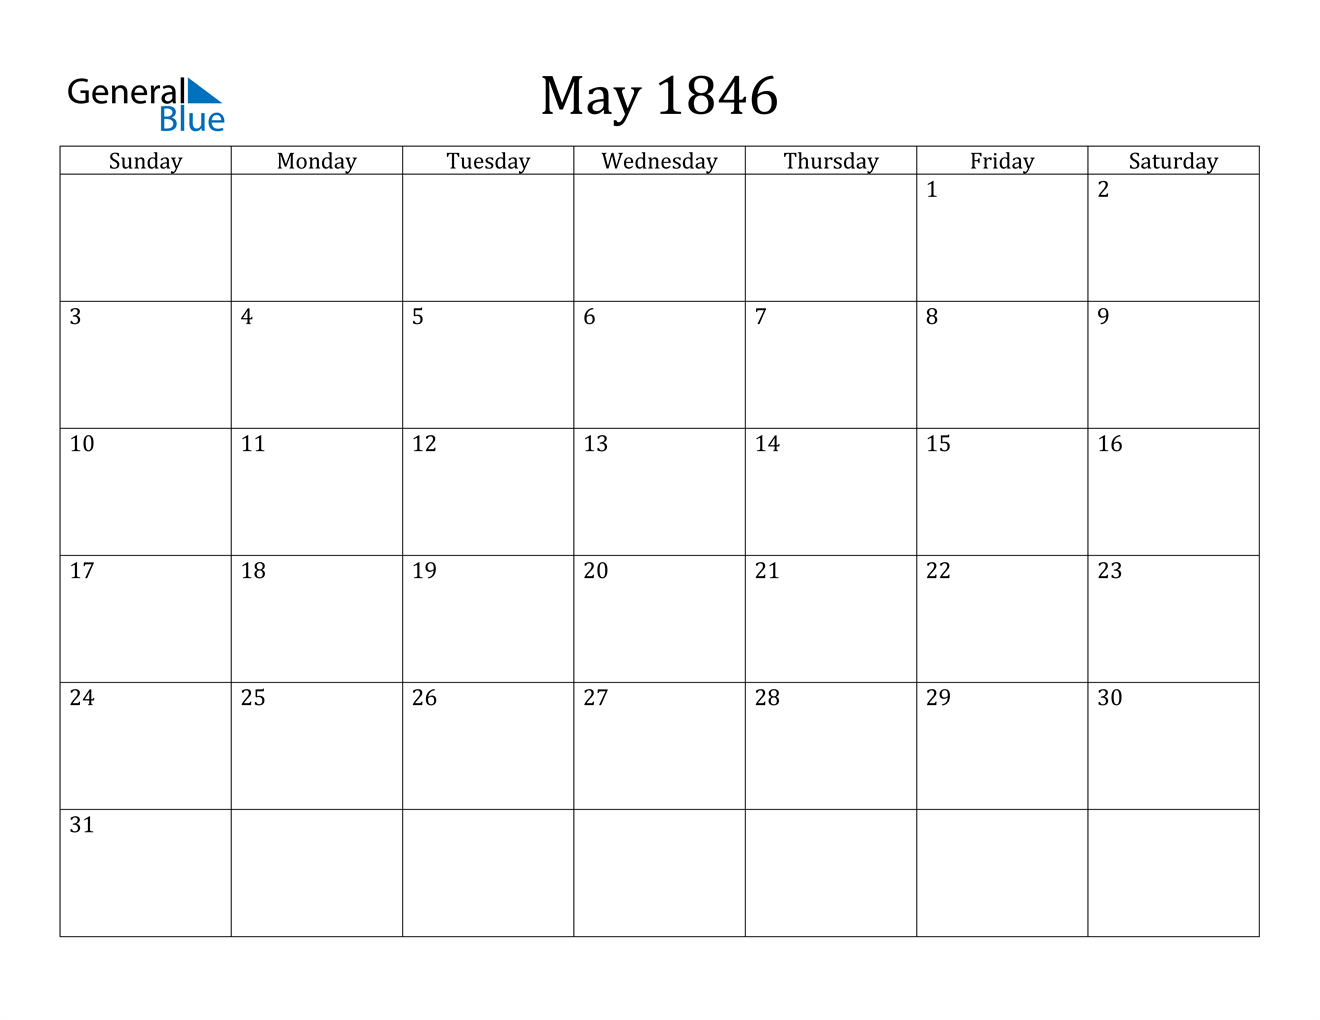 Image of May 1846 Calendar